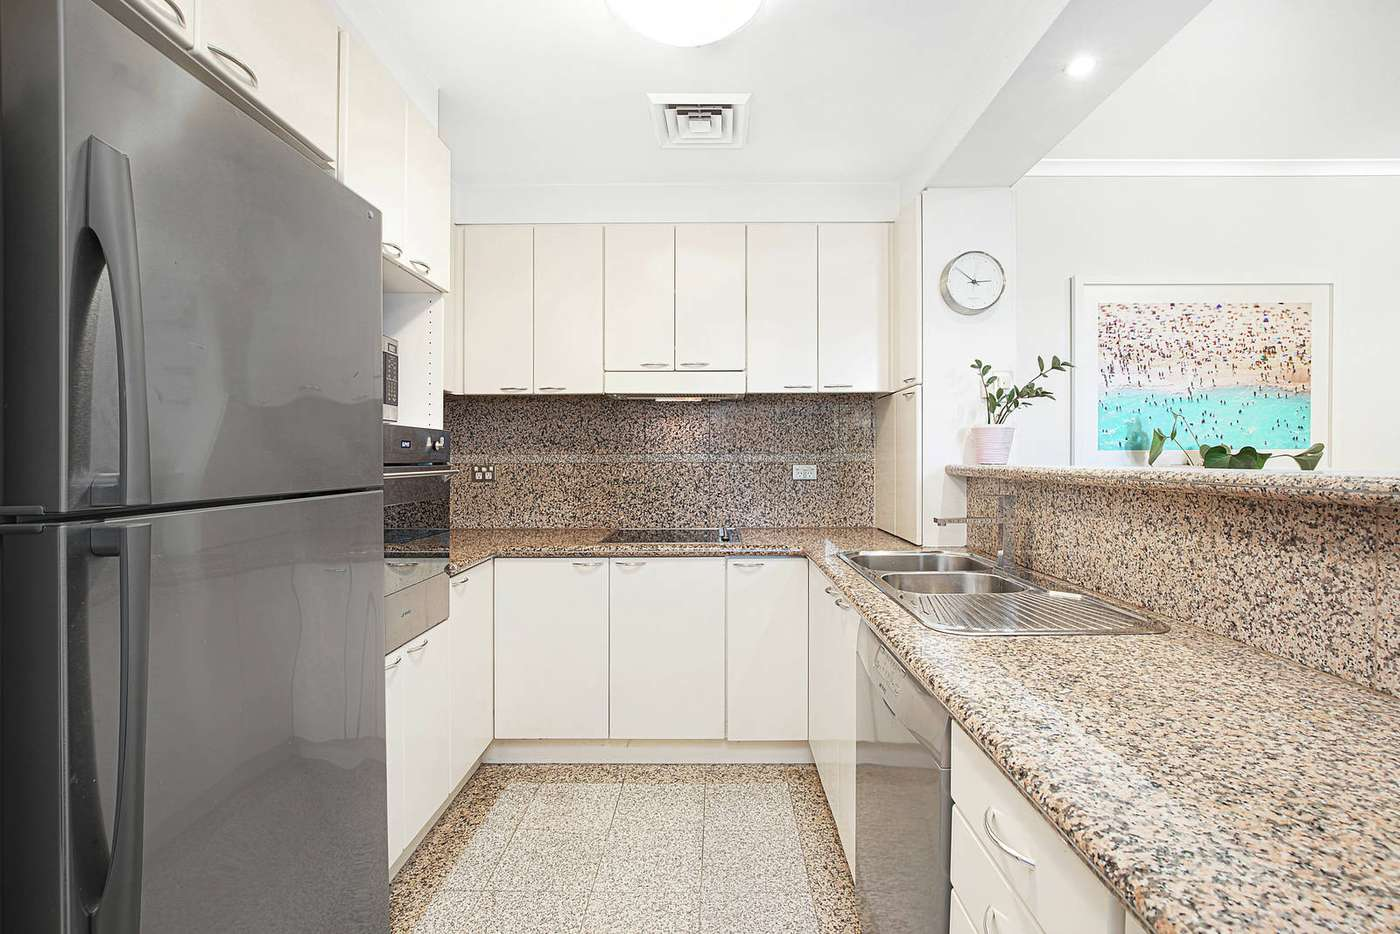 Fifth view of Homely apartment listing, 2003/343 Pitt Street, Sydney NSW 2000